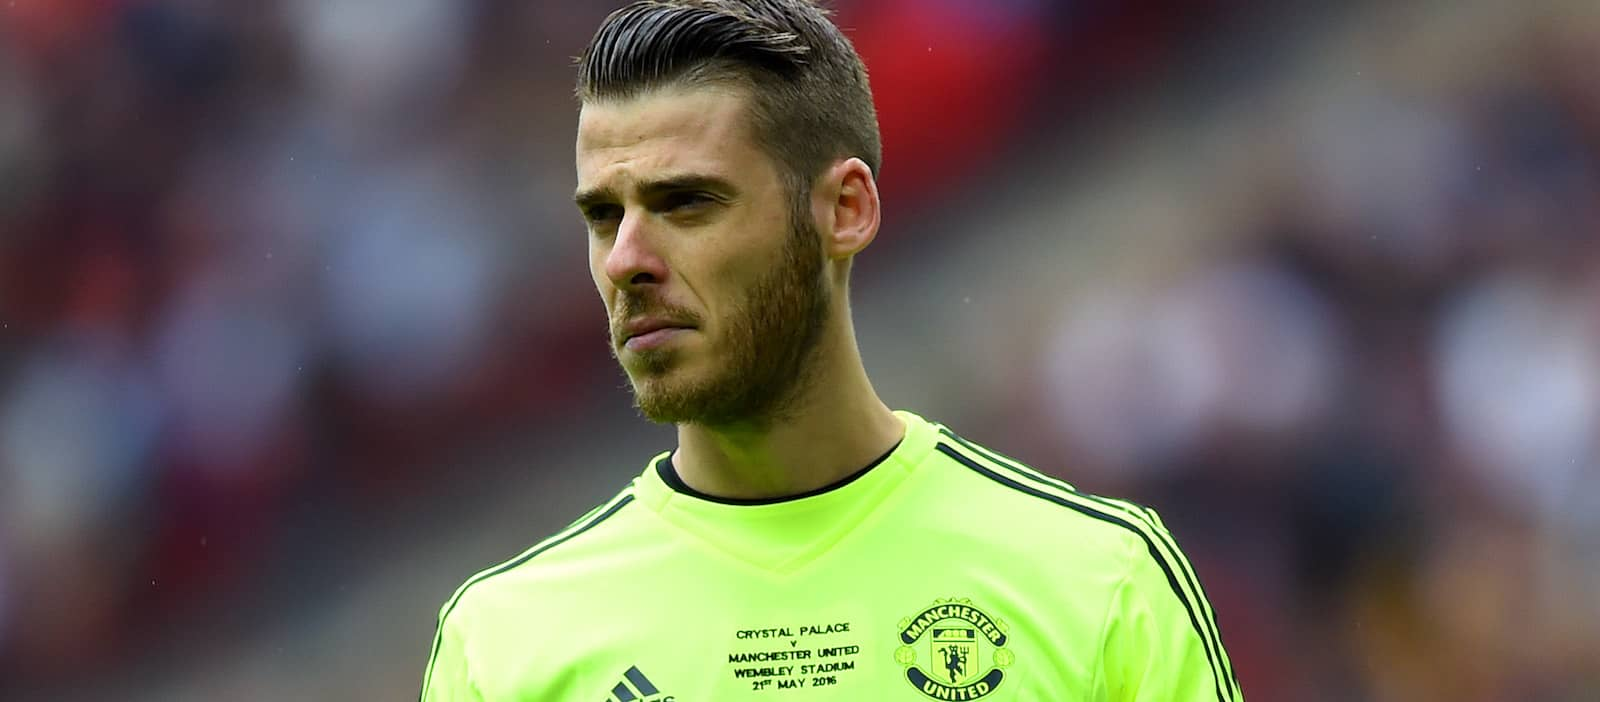 Spain David de Gea has ruled out moving to Real Madrid